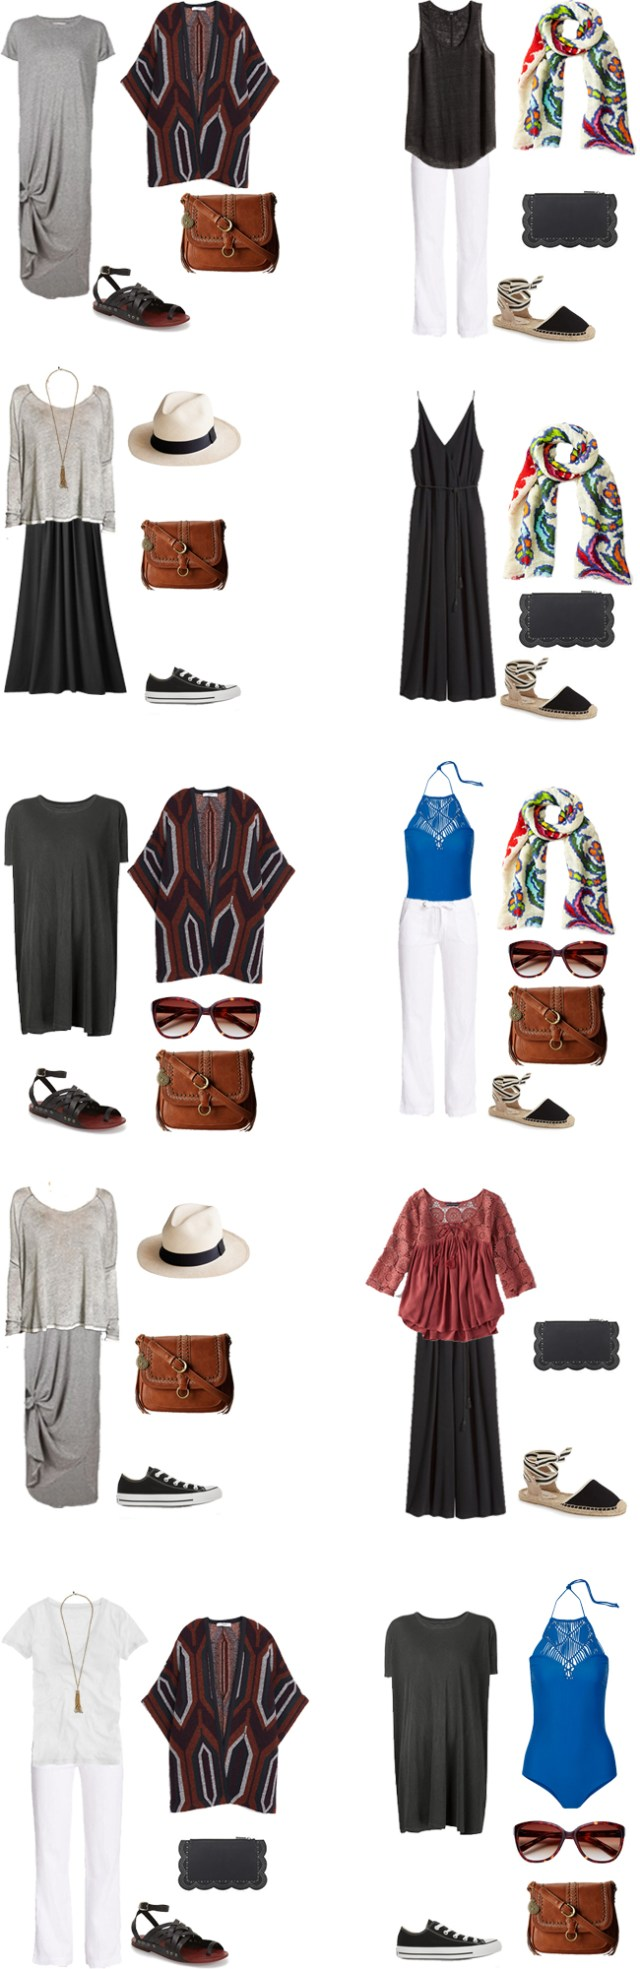 What to Wear in Panama Outfits 11-20 #travellight #packinglight #travel #traveltips